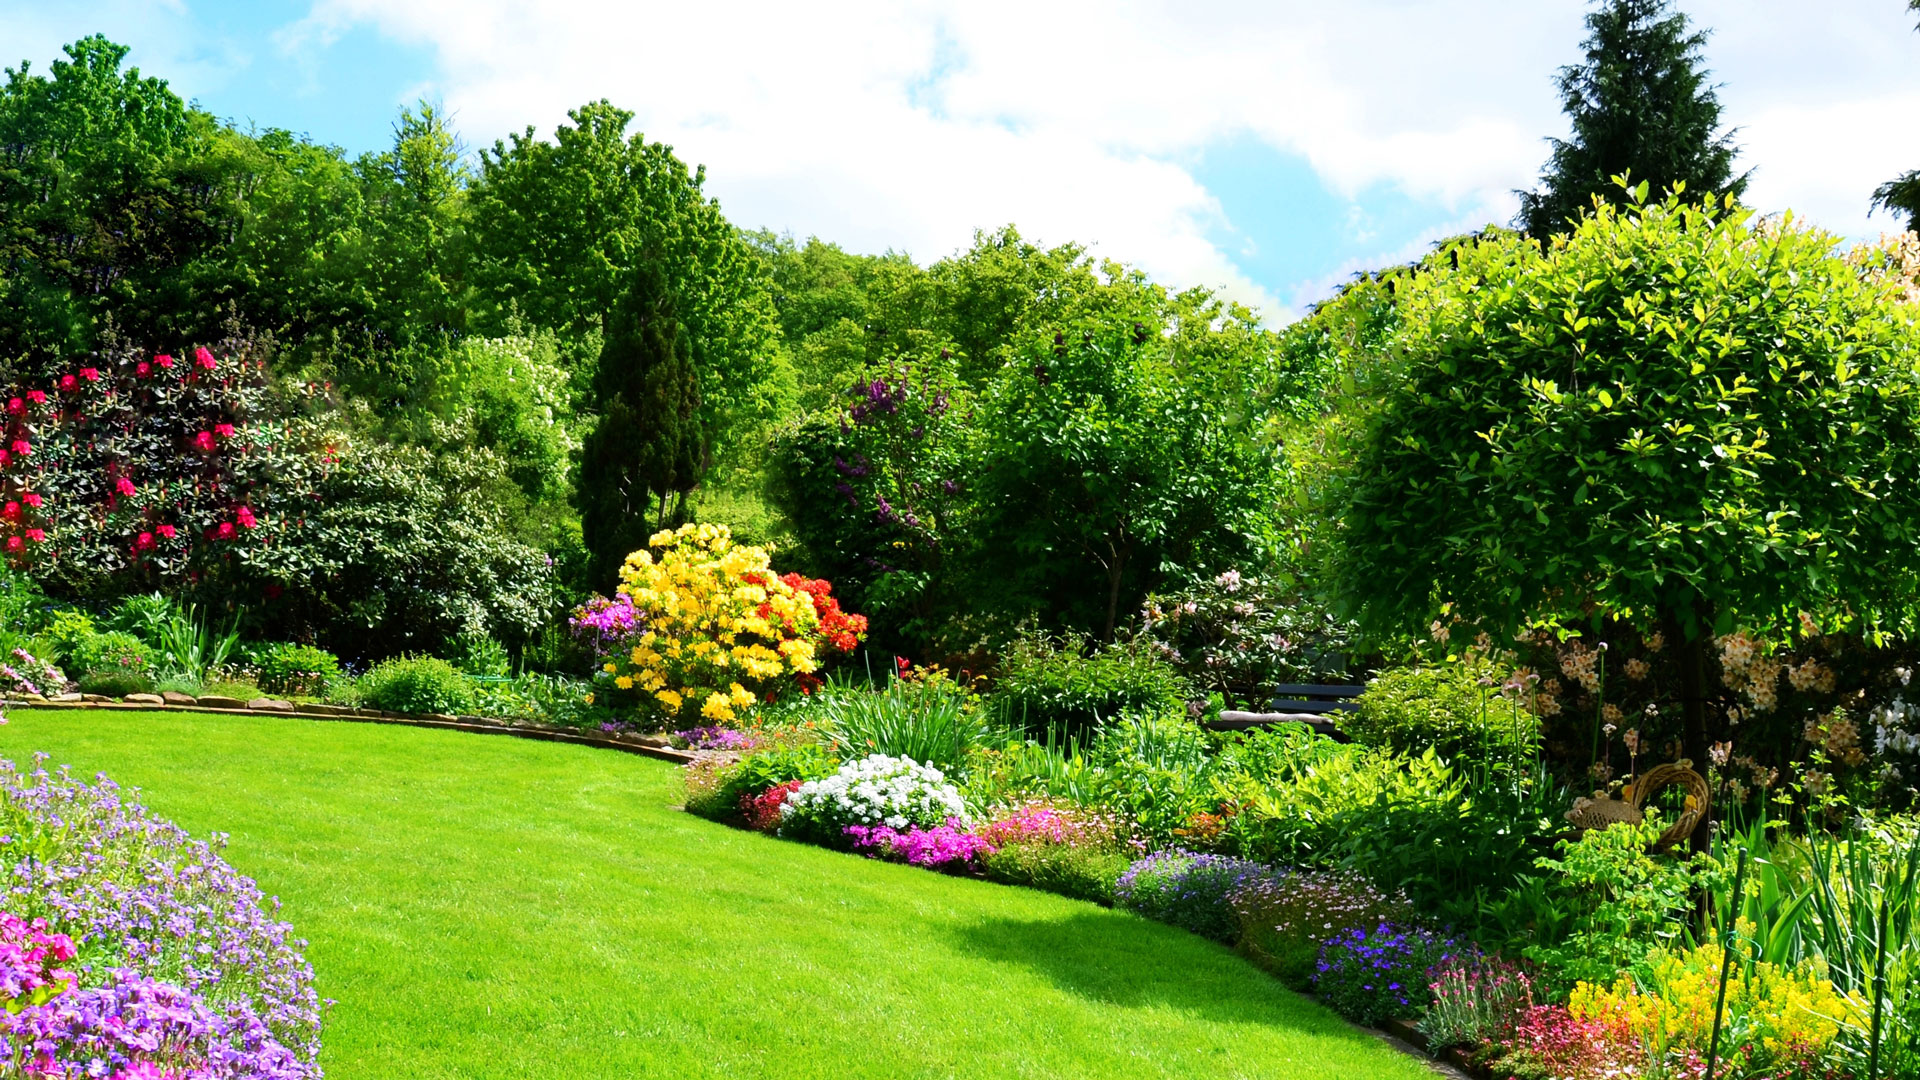 About Our Lawn Care & Landscaping Company   All Pro Lawns Inc